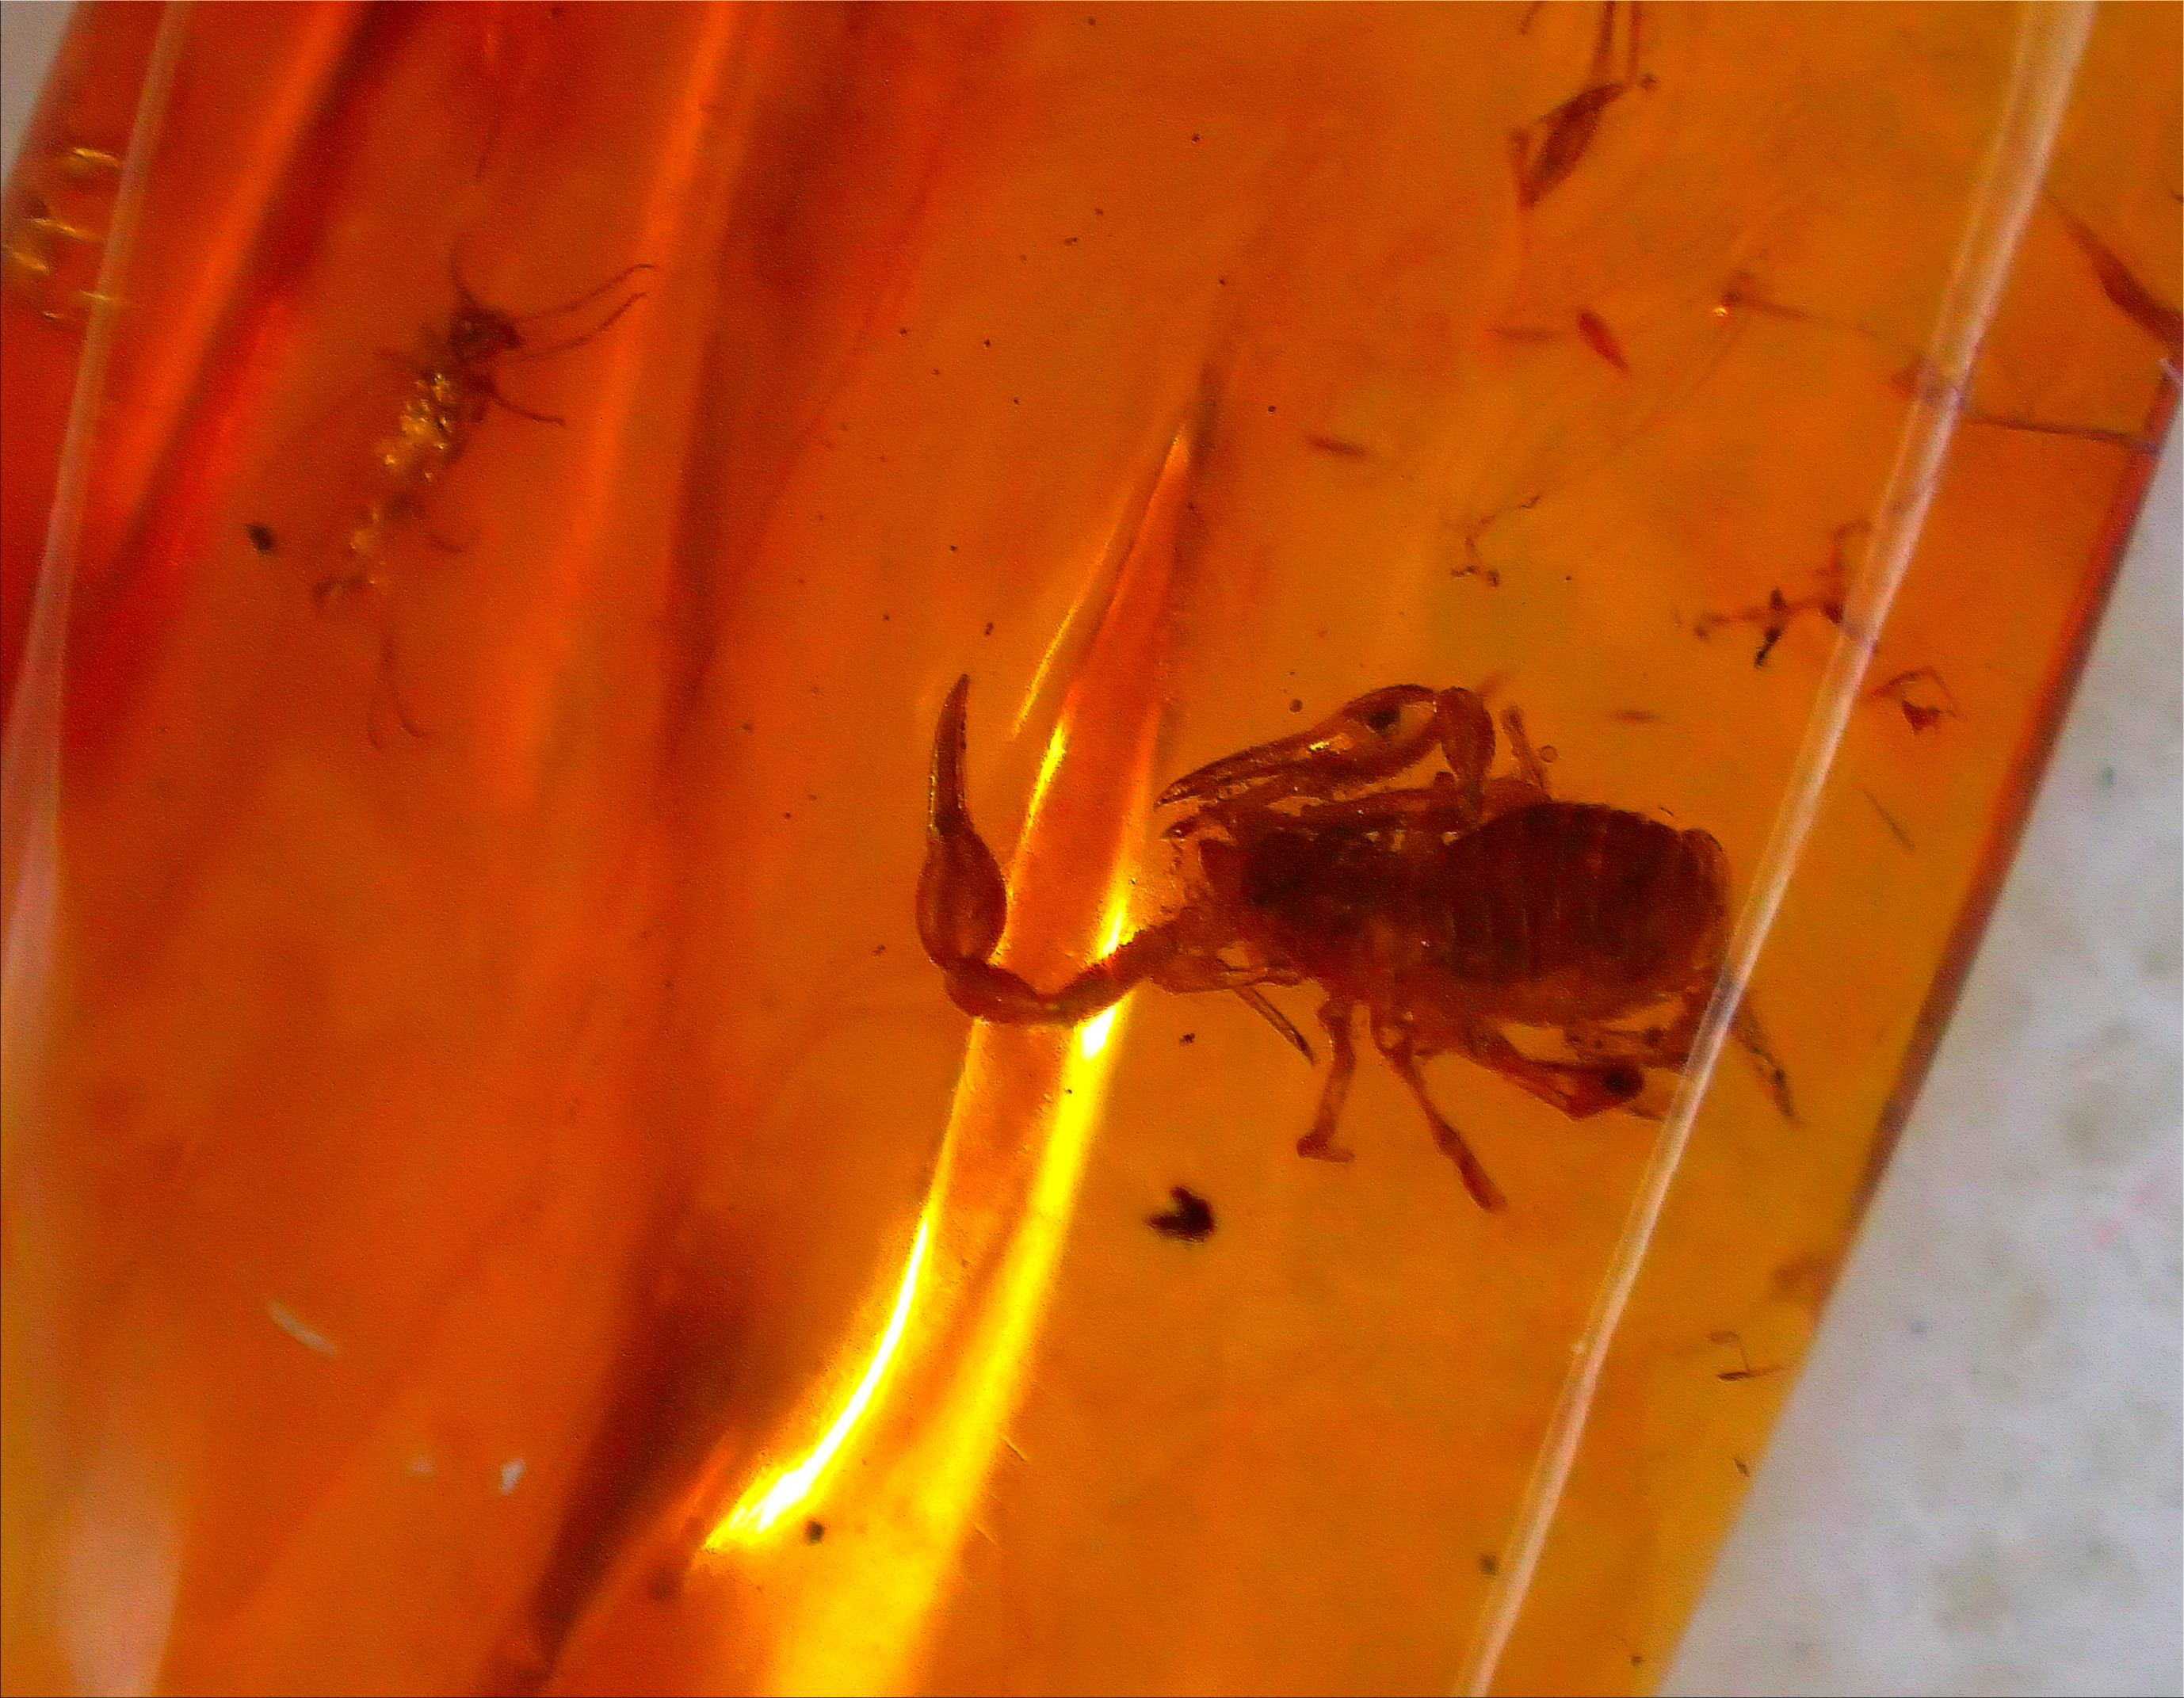 Pseudoscorpion and Gnat in Baltic Amber. Photo by Thomas Peace c. 2015